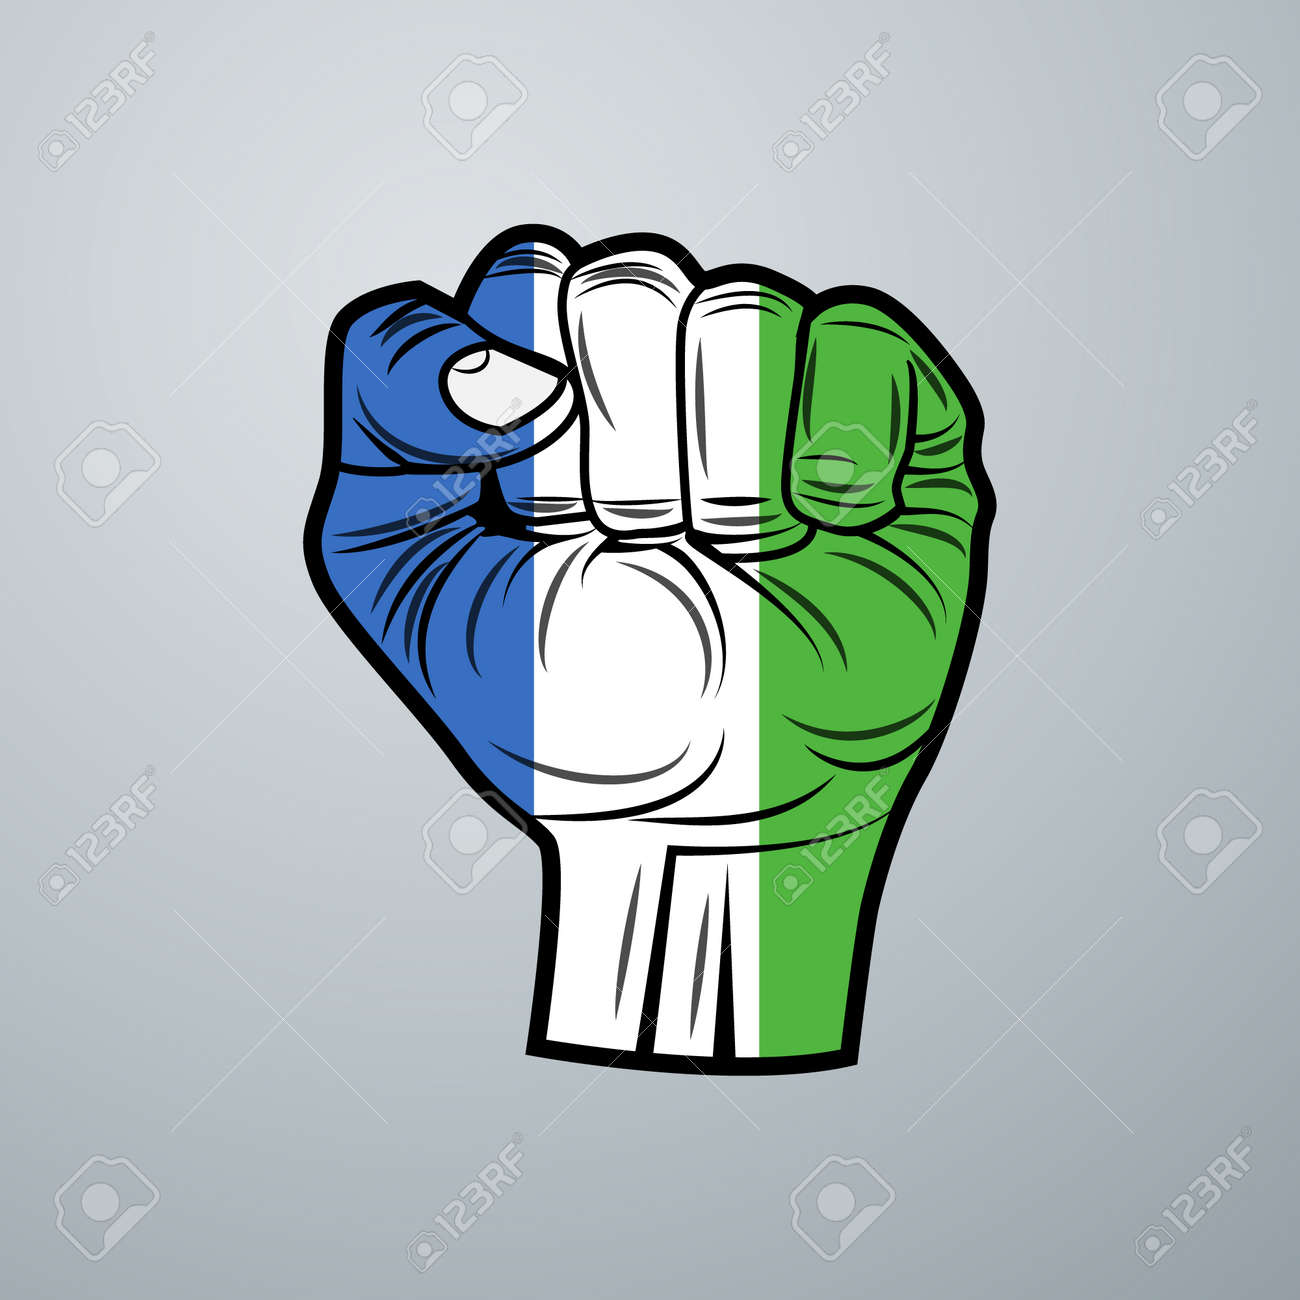 Sierra Leone Flag with Hand Design isolated on white background. Vector illustration - 172643327